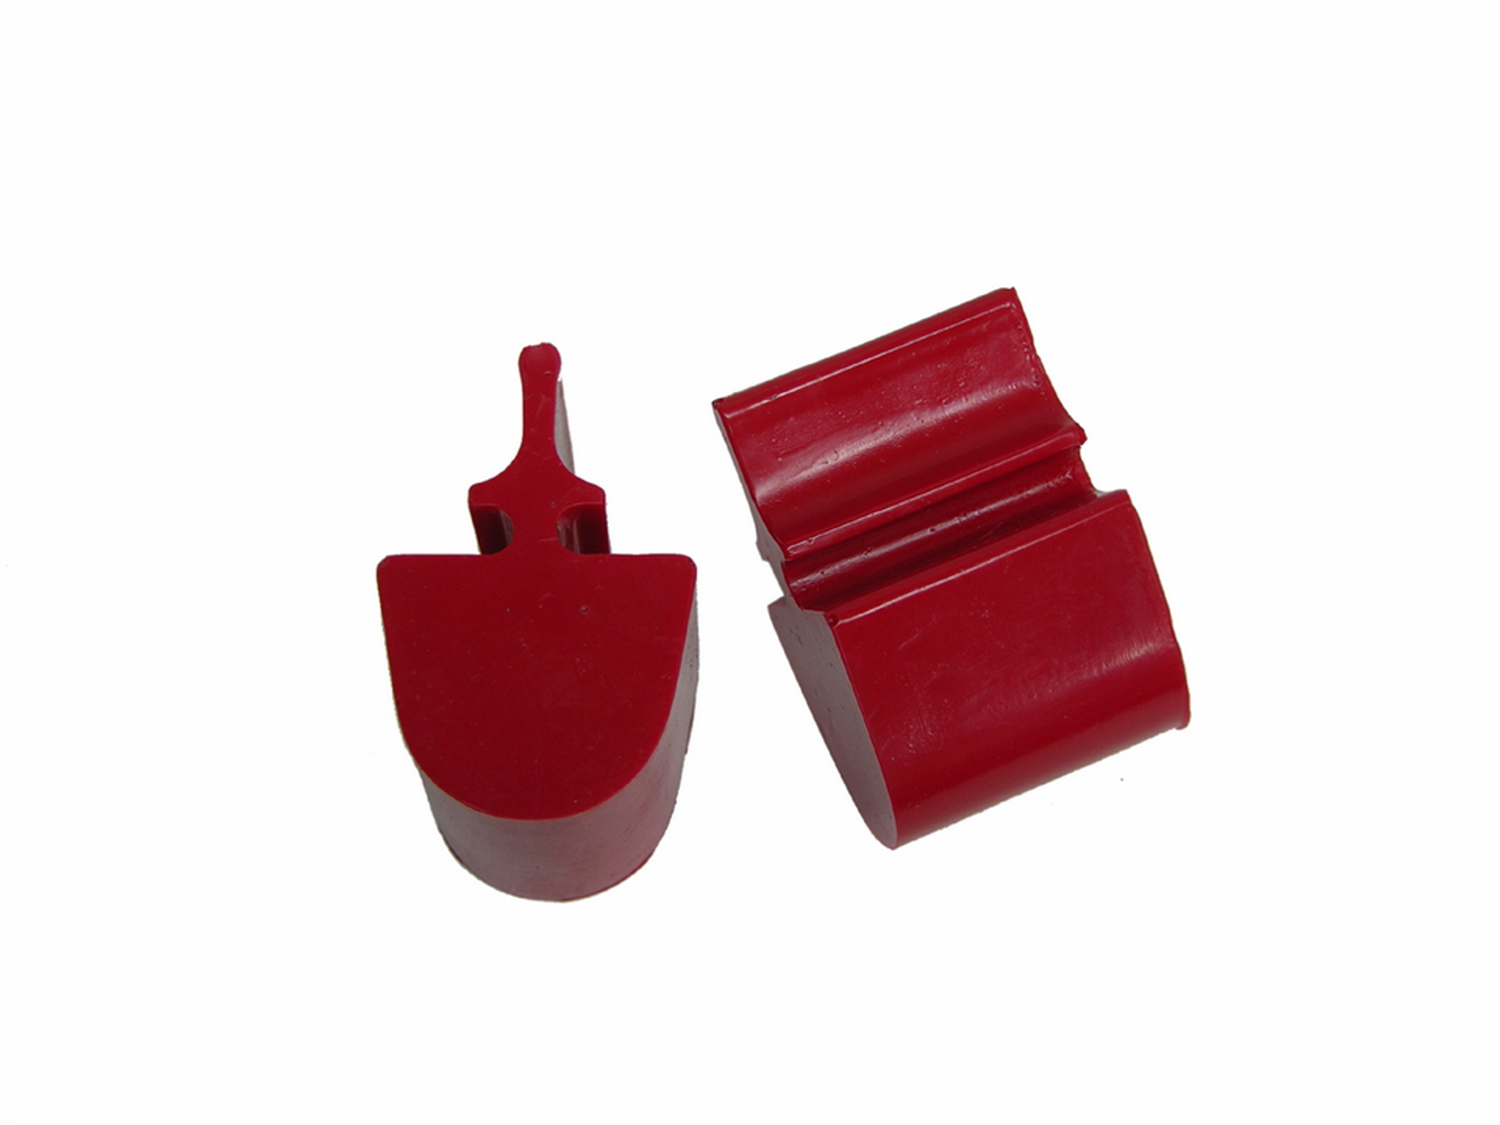 All Vehicles (Universal) Prothane Pull Through Style Bump Stop - Round Top Model - Red